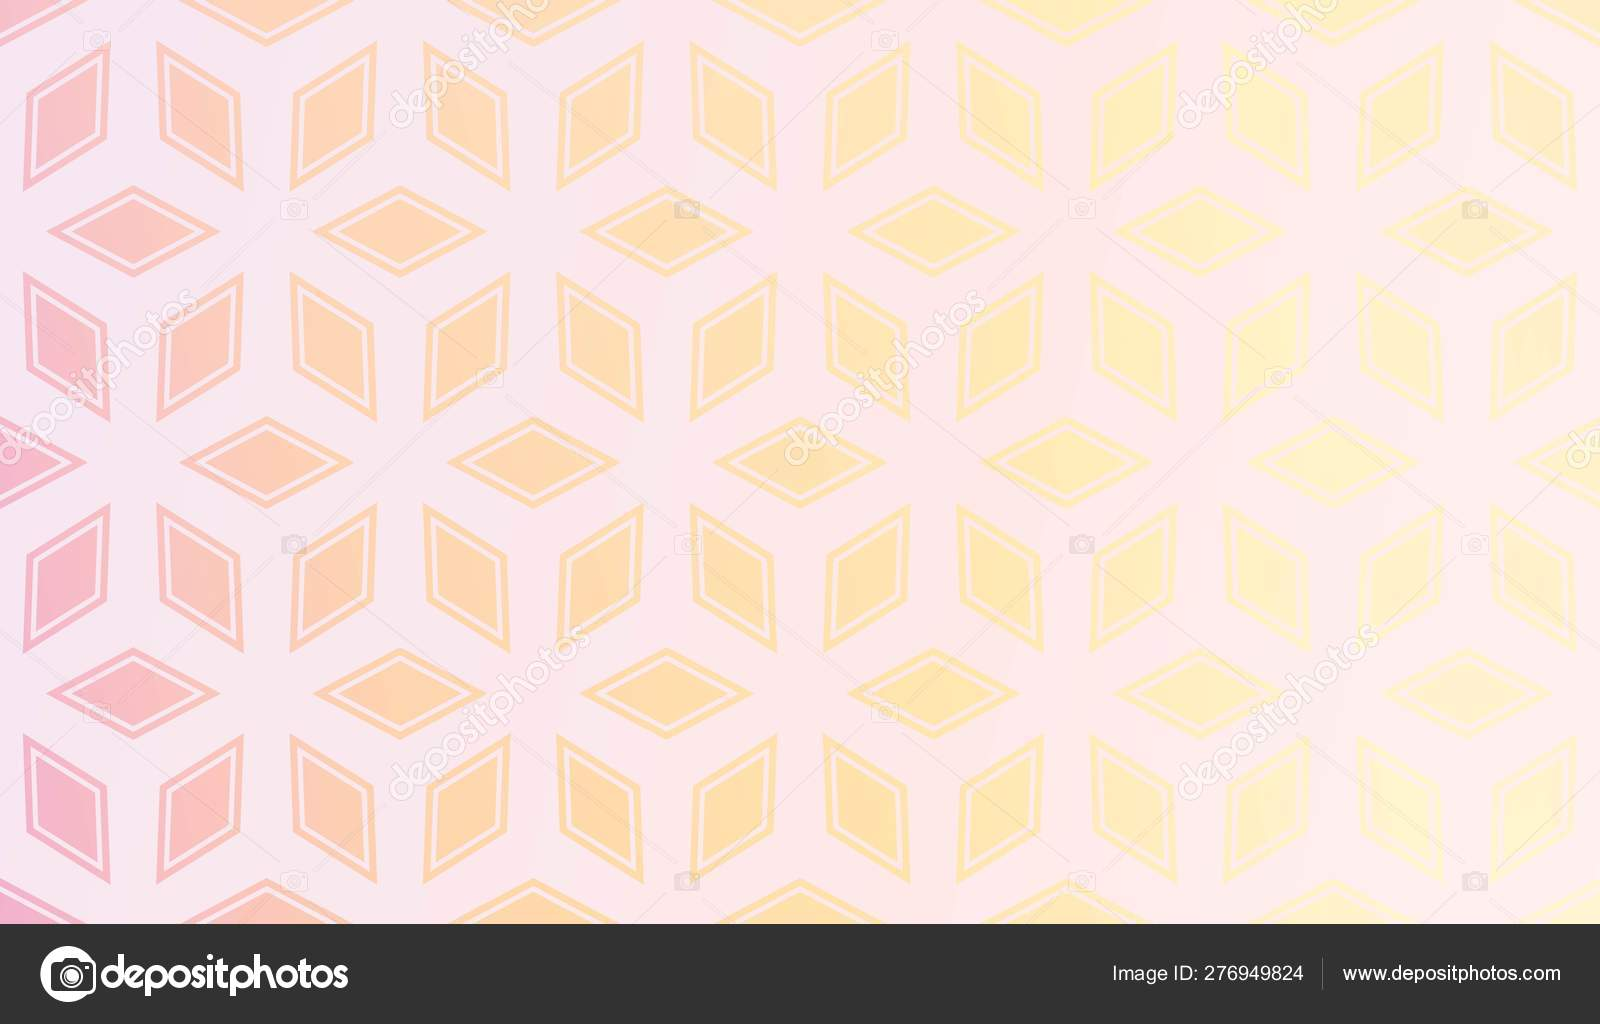 Pattern With Abstract Geometric Design Vector Illustration Design For Your Interior Wallpaper Fashion Print Business Presentation Blurred Gradient Stock Vector C Rakov83 276949824